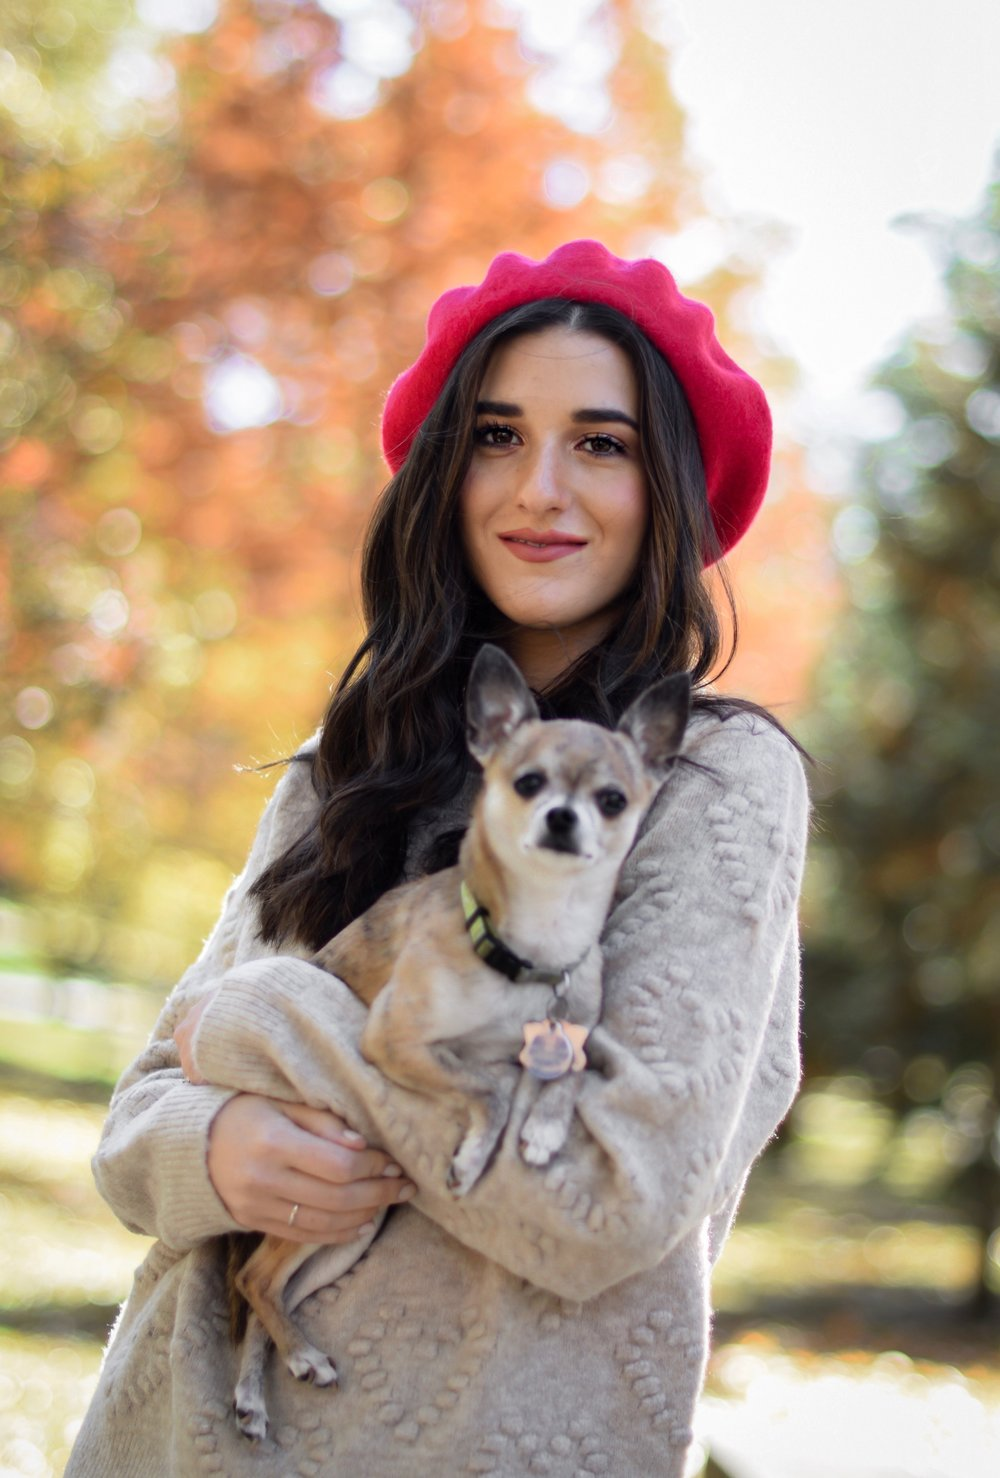 10 Tips To Being Productive On Your Next Flight Esther Santer Fashion Blog NYC Street Style Blogger Outfit OOTD Trendy Shopping Dog Chihuaha Red Beret Instagram Puppy Romeo Photoshoot Saint St Louis Lipstick Fall Trees Happy Hearts Sweater H&M  Winter.jpg